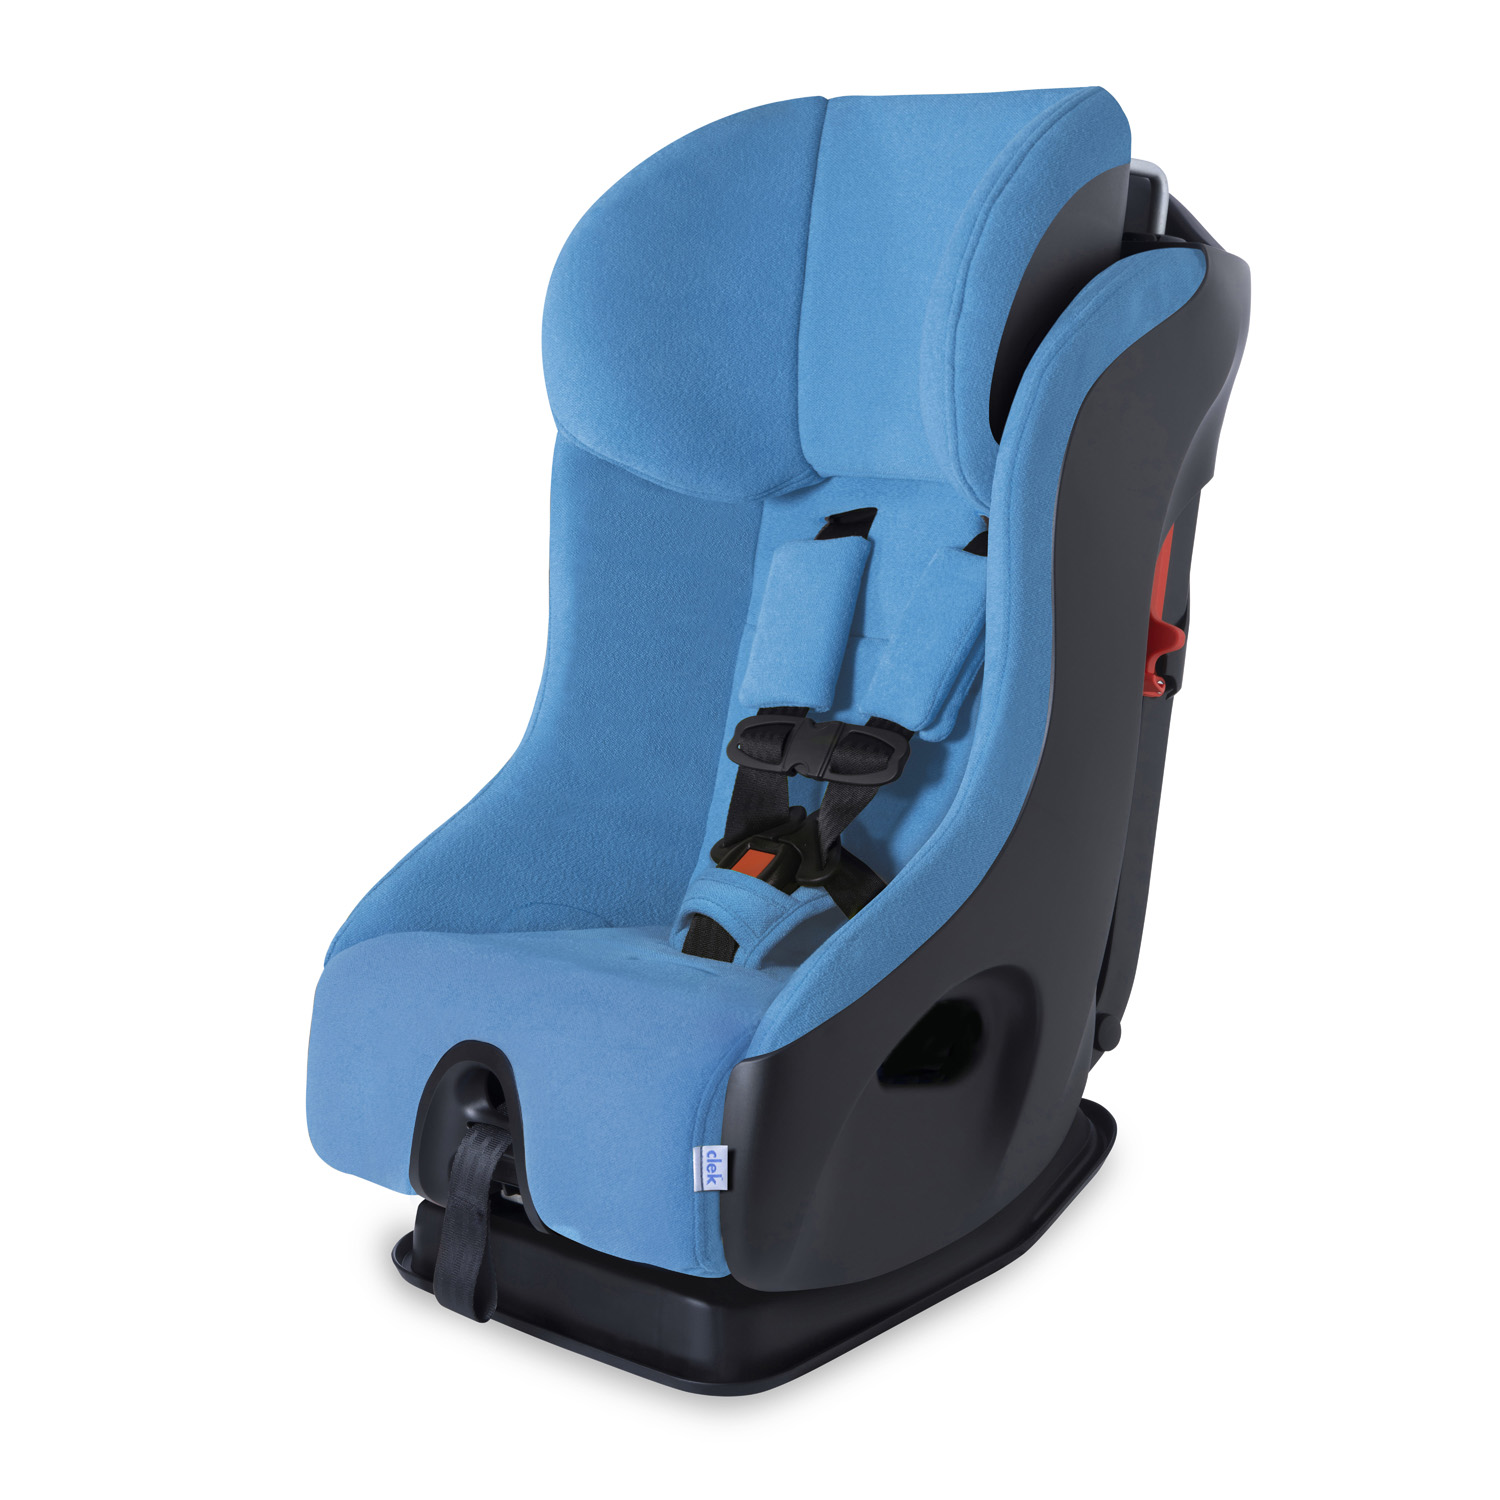 Clek Fllo Convertible Car Seat - Ten Year Blue (C-Zero+)